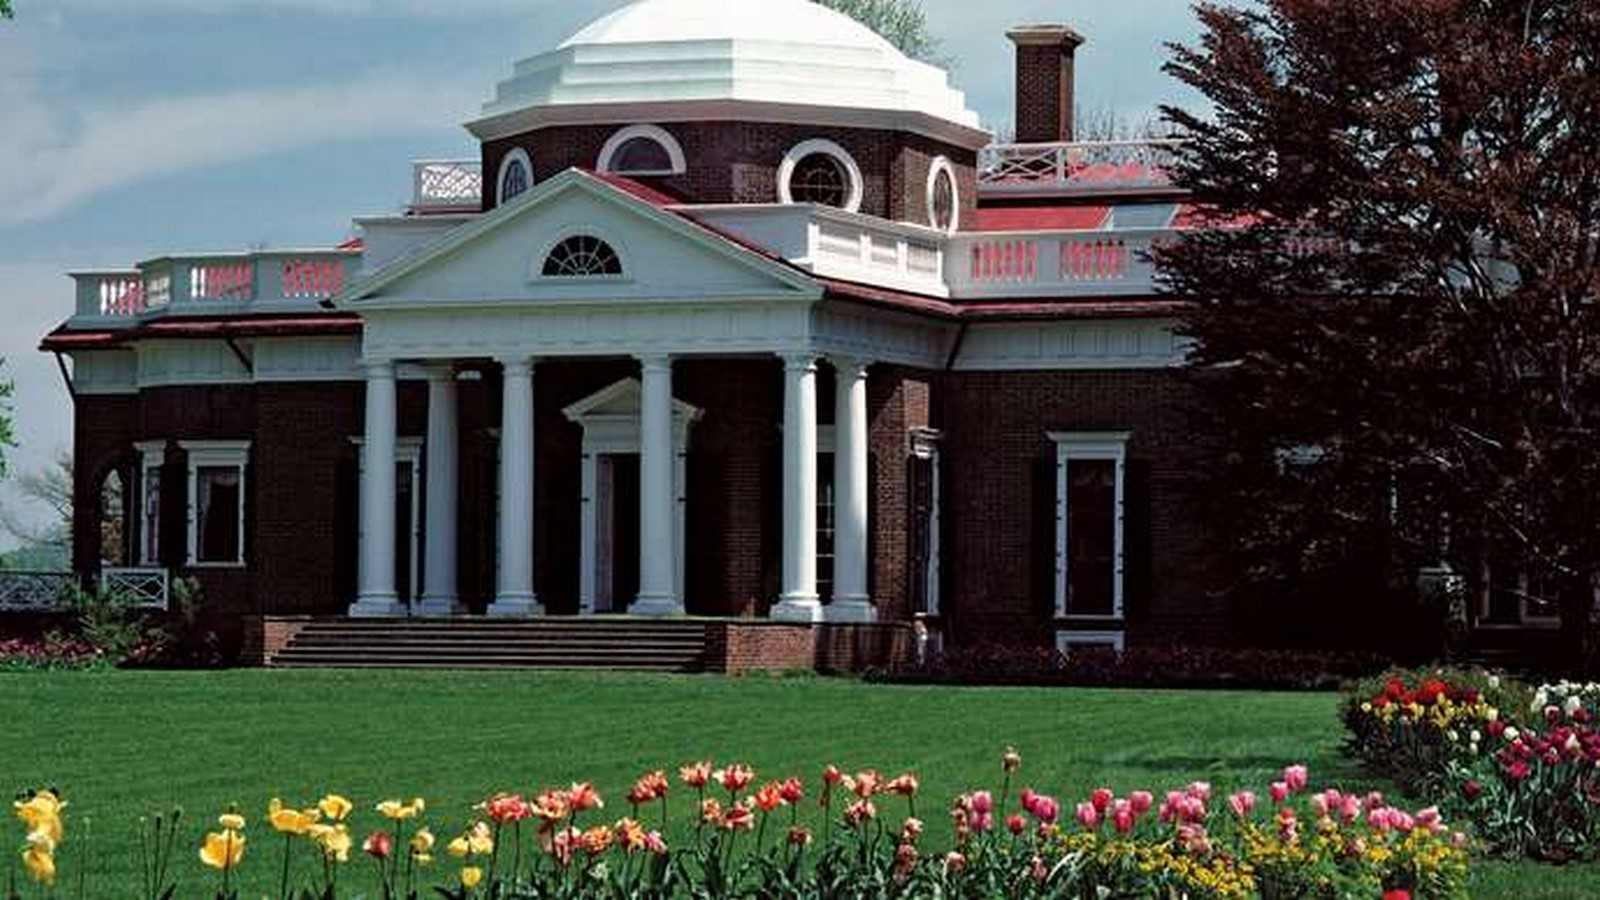 Jeffersonian architecture Aesthetic of French and Italian - Sheet4